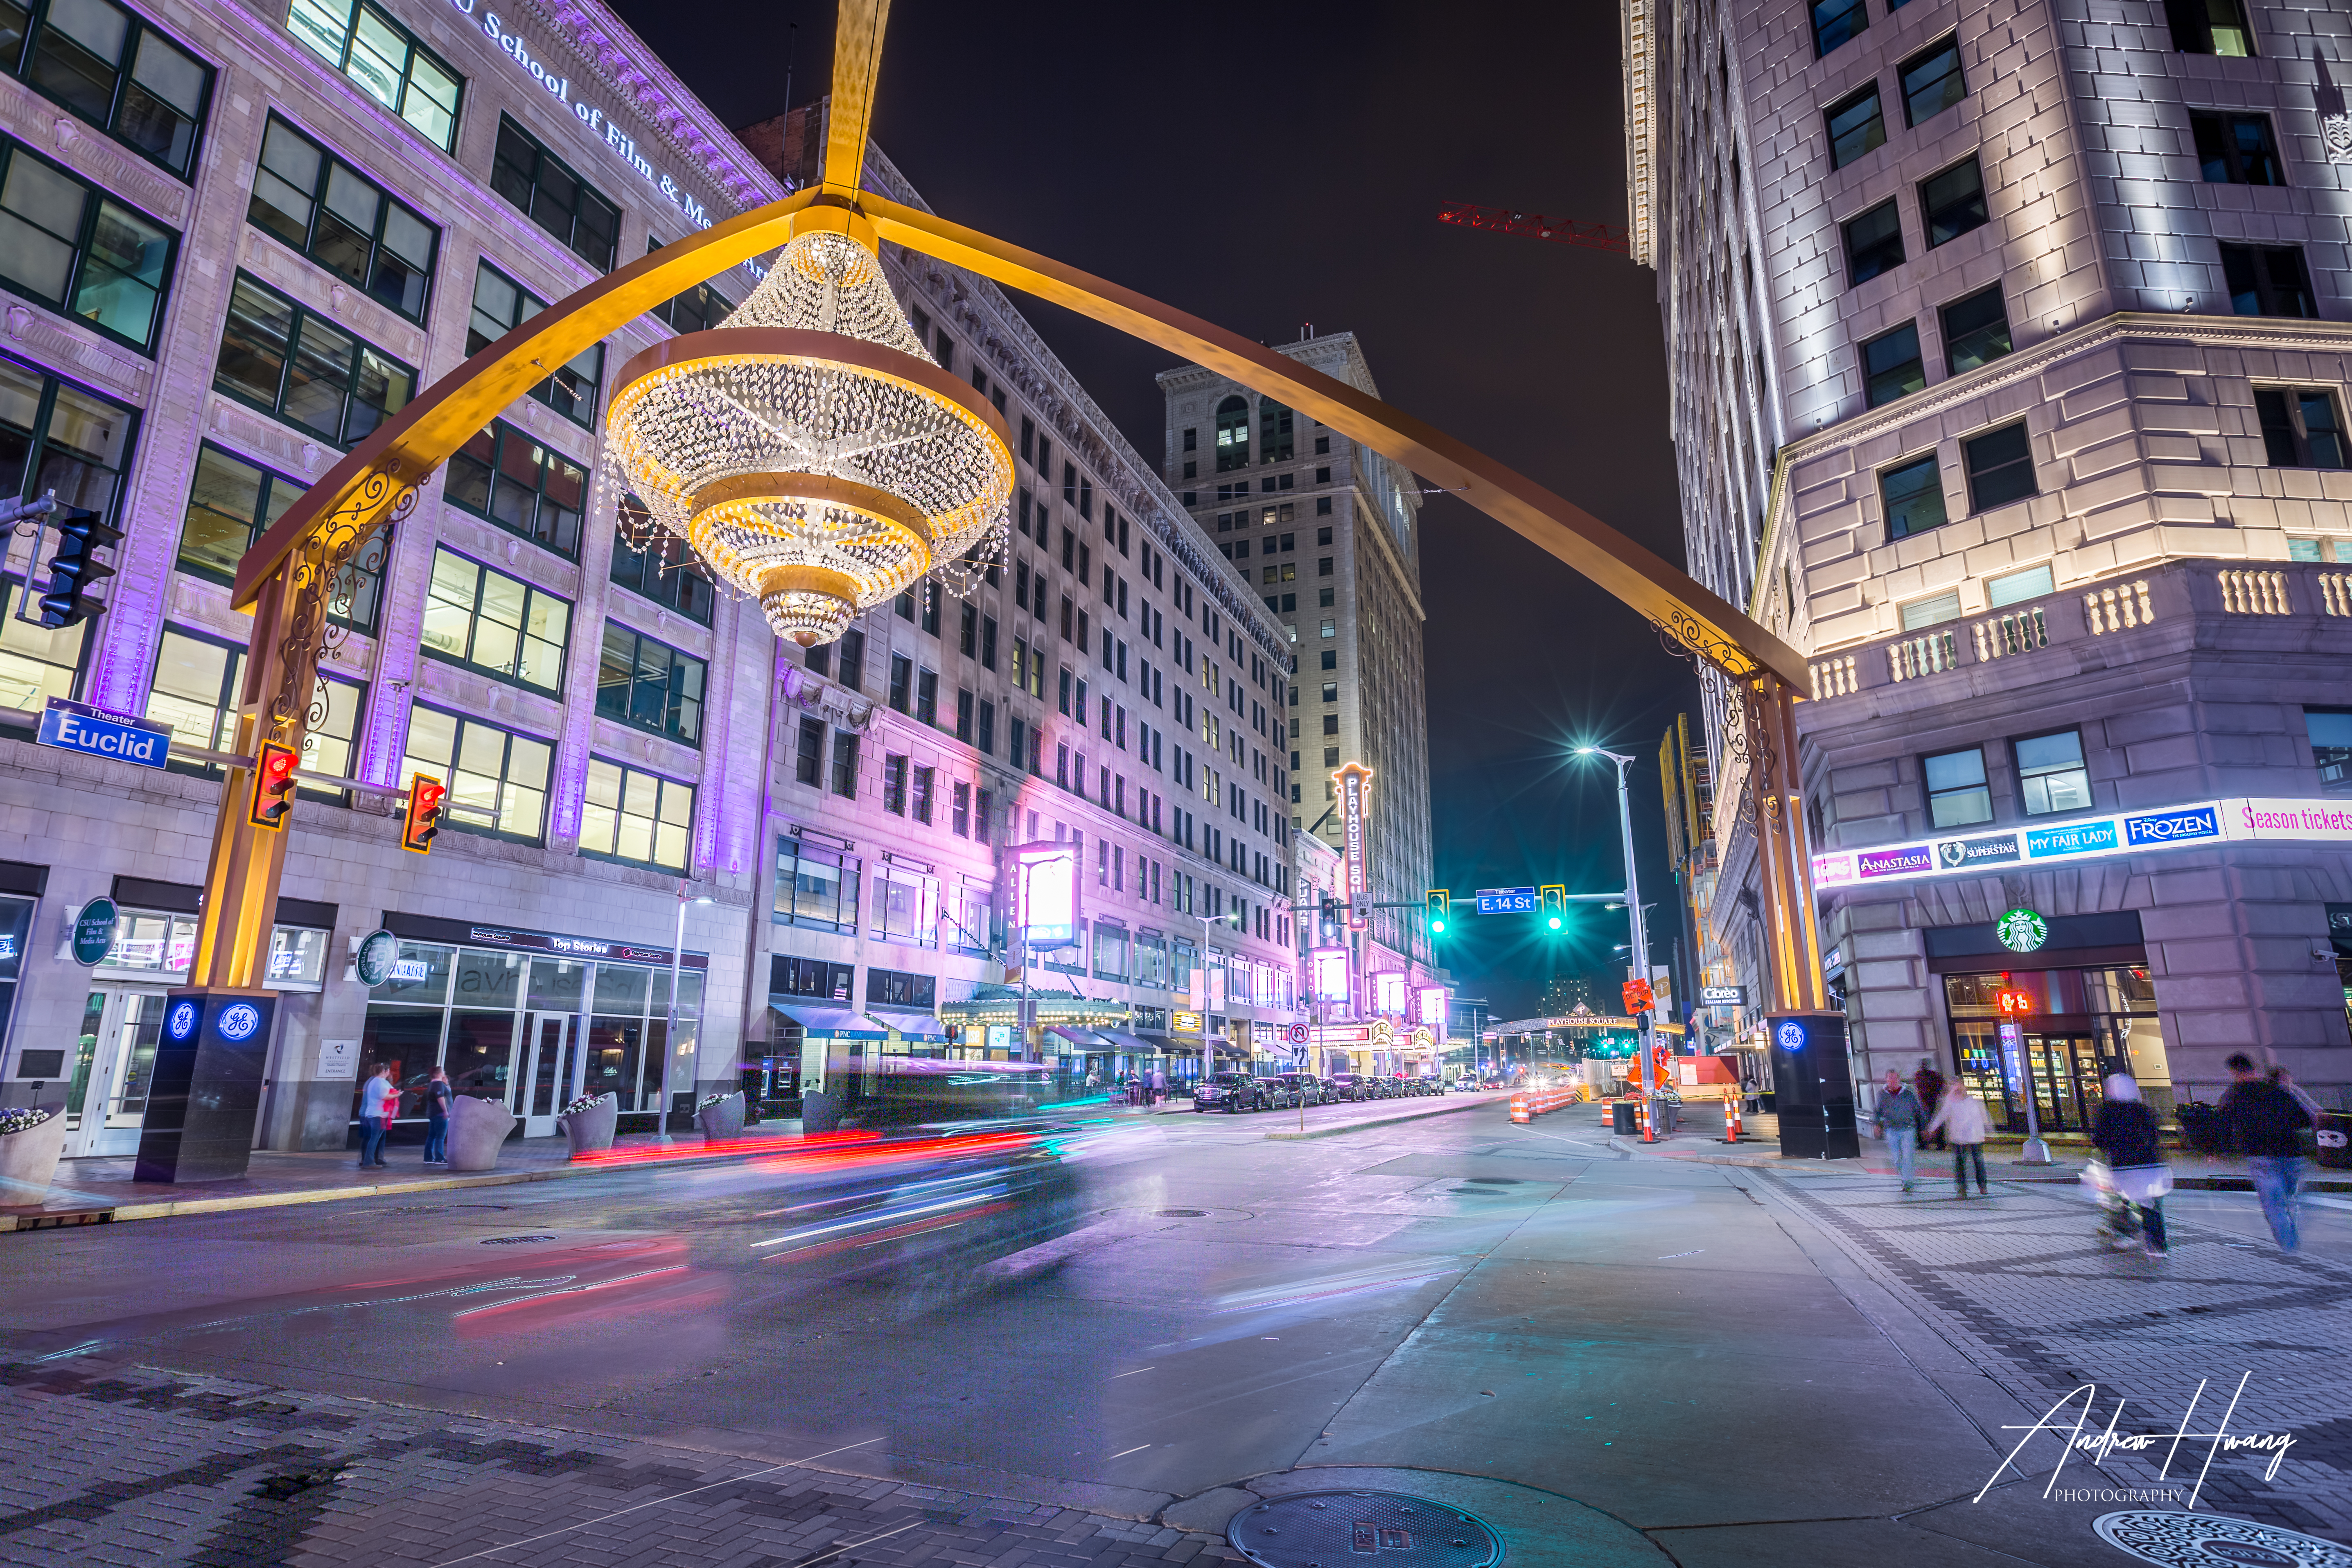 Playhouse Square Light Trail